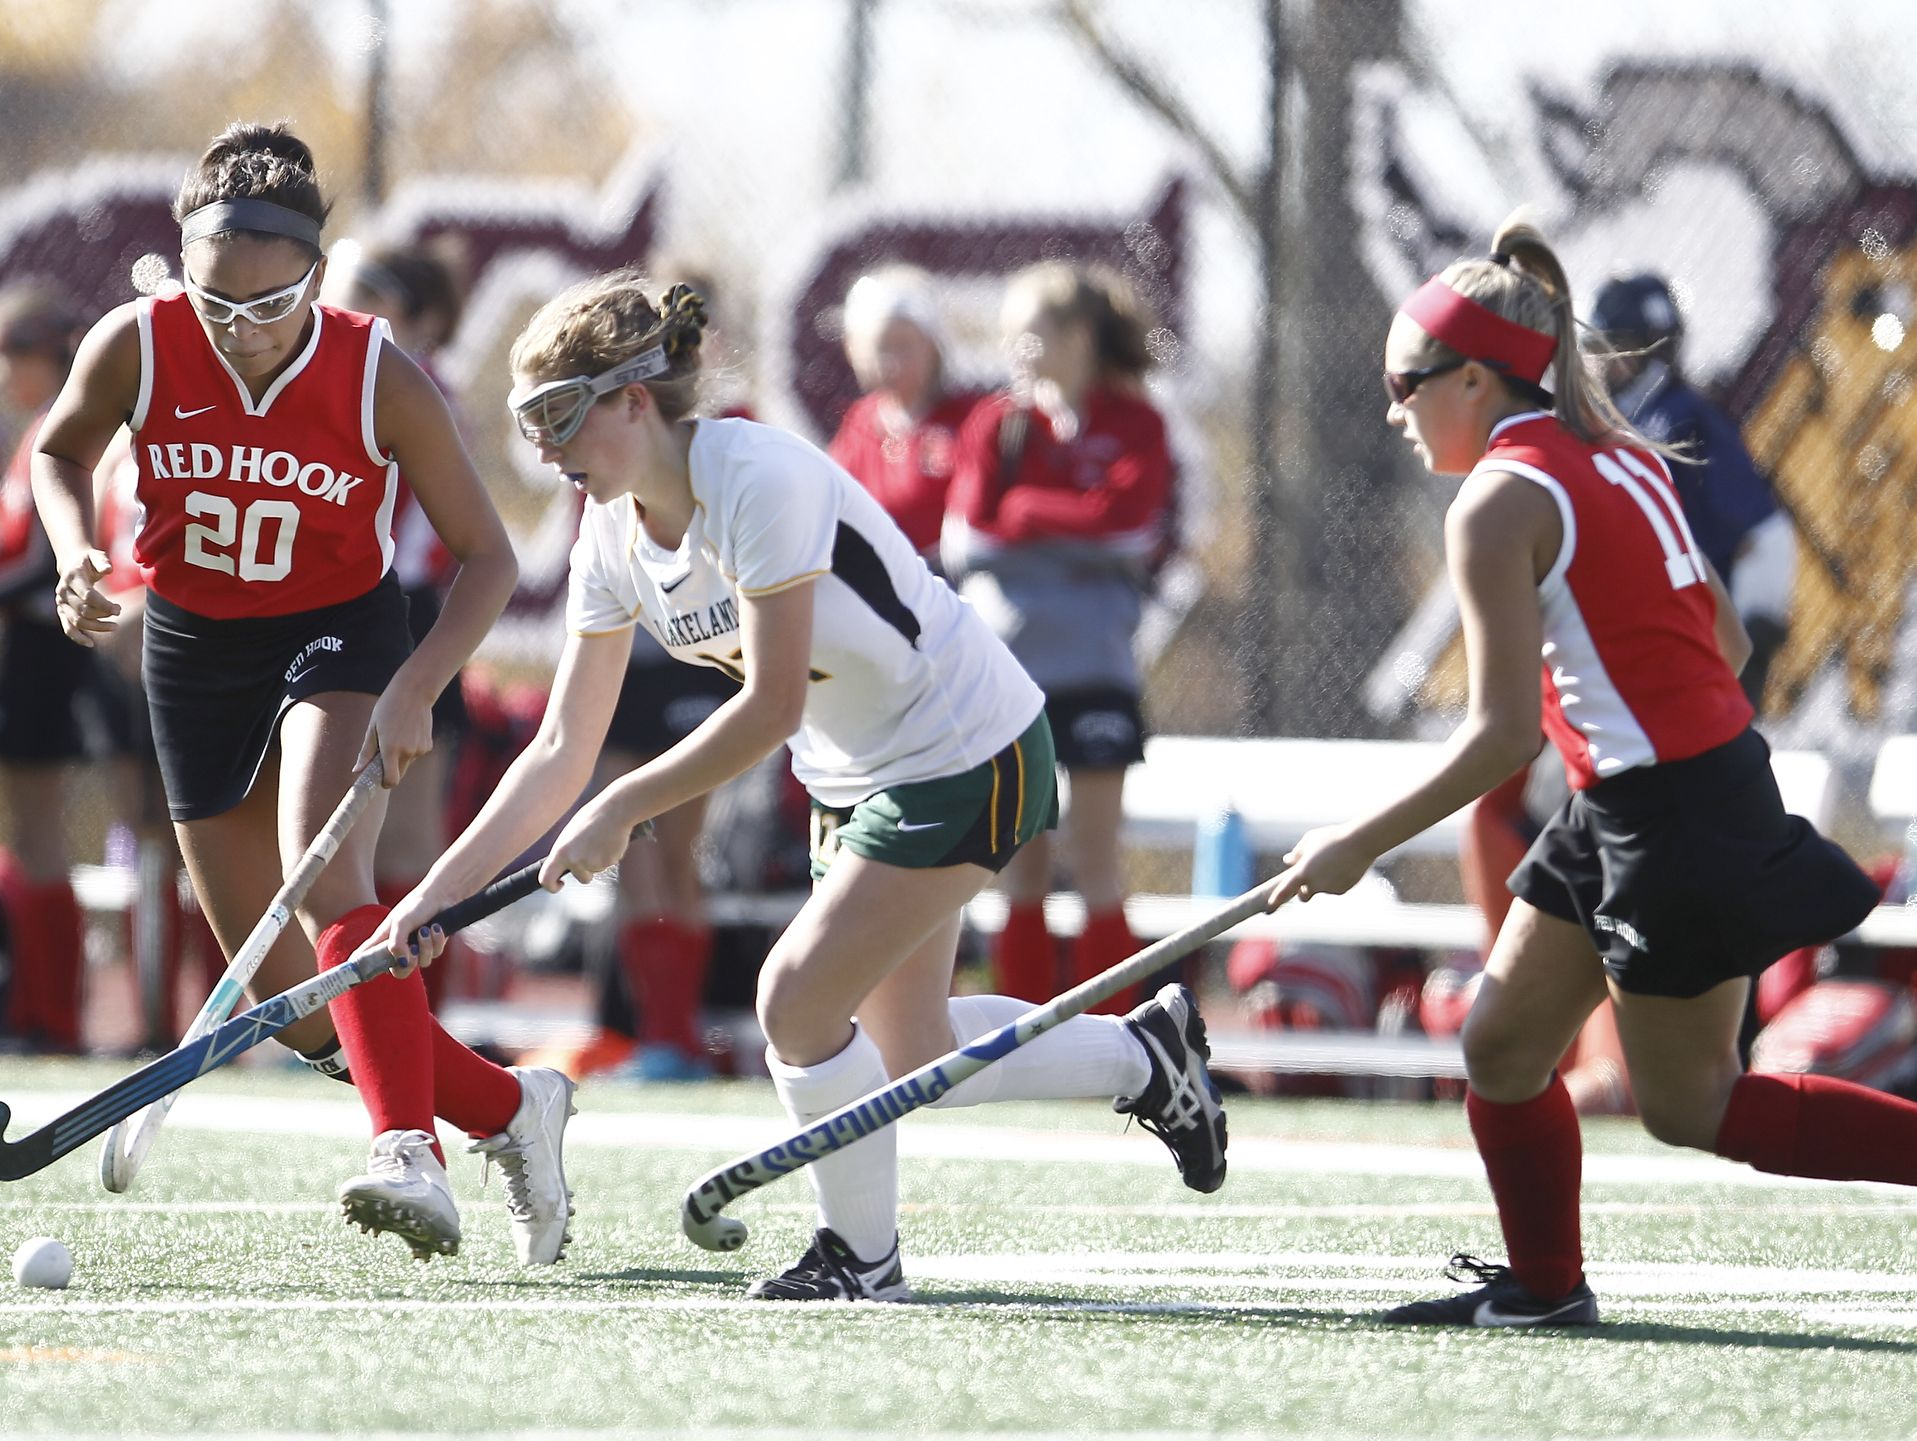 Lakeland's Julianna Cappello (11) splits the Red Hook defense at mid-field during their 8-0 win in the Class B regional championship field hockey game at Valhalla High School on Saturday, November 5, 2016.